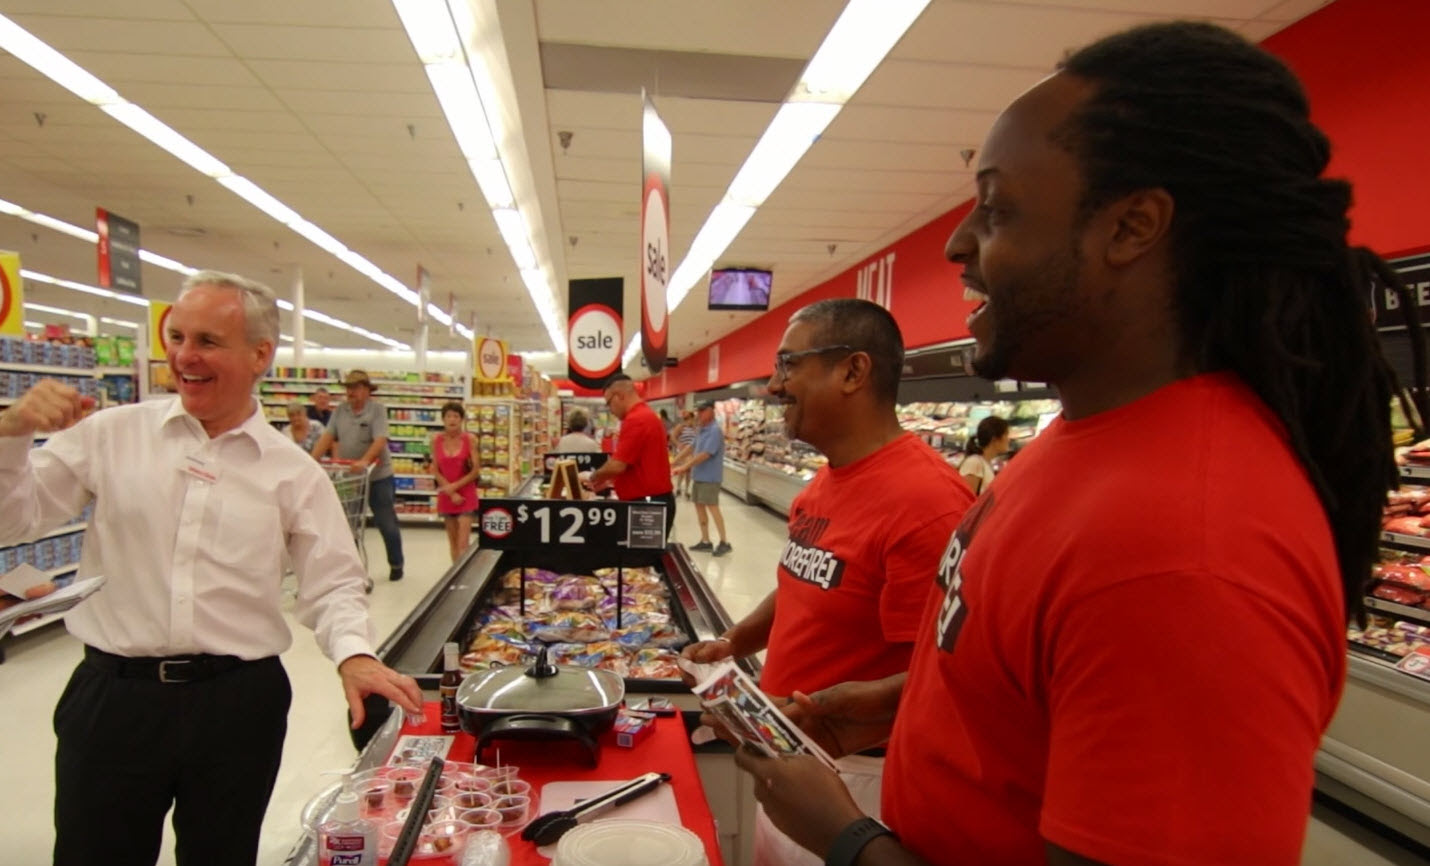 Winn-Dixie CEO has 'GOT THAT FIRE!' with TeamMoreFire at Grand Opening